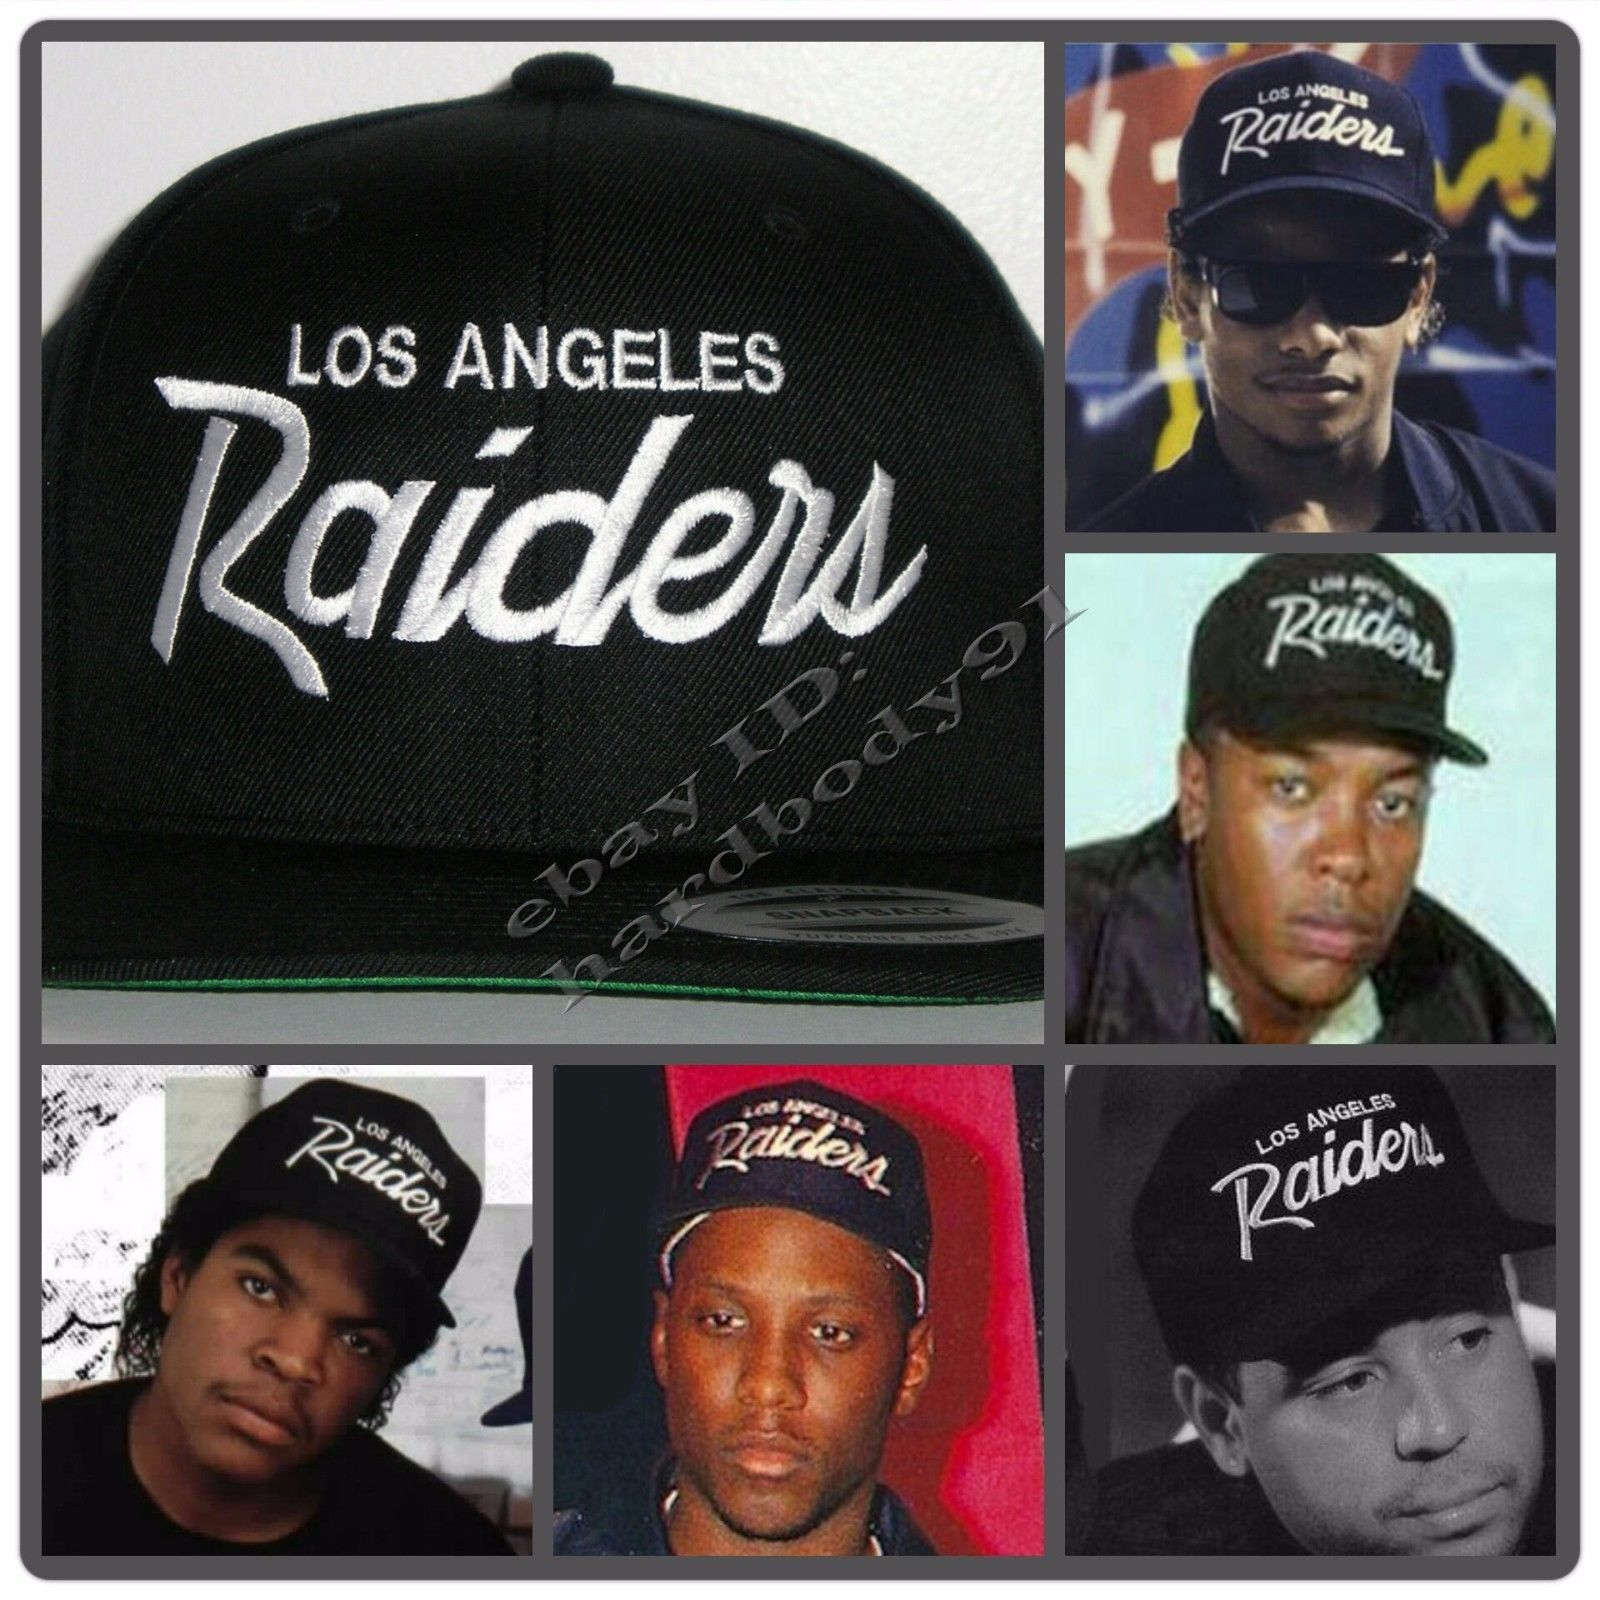 More like the NWA ones - brand is Yuurong or something    Vintage Replica  La Los Angeles Raiders Script Cap Hat Snapback Black NWA Eazy E  0a7df7a4a39